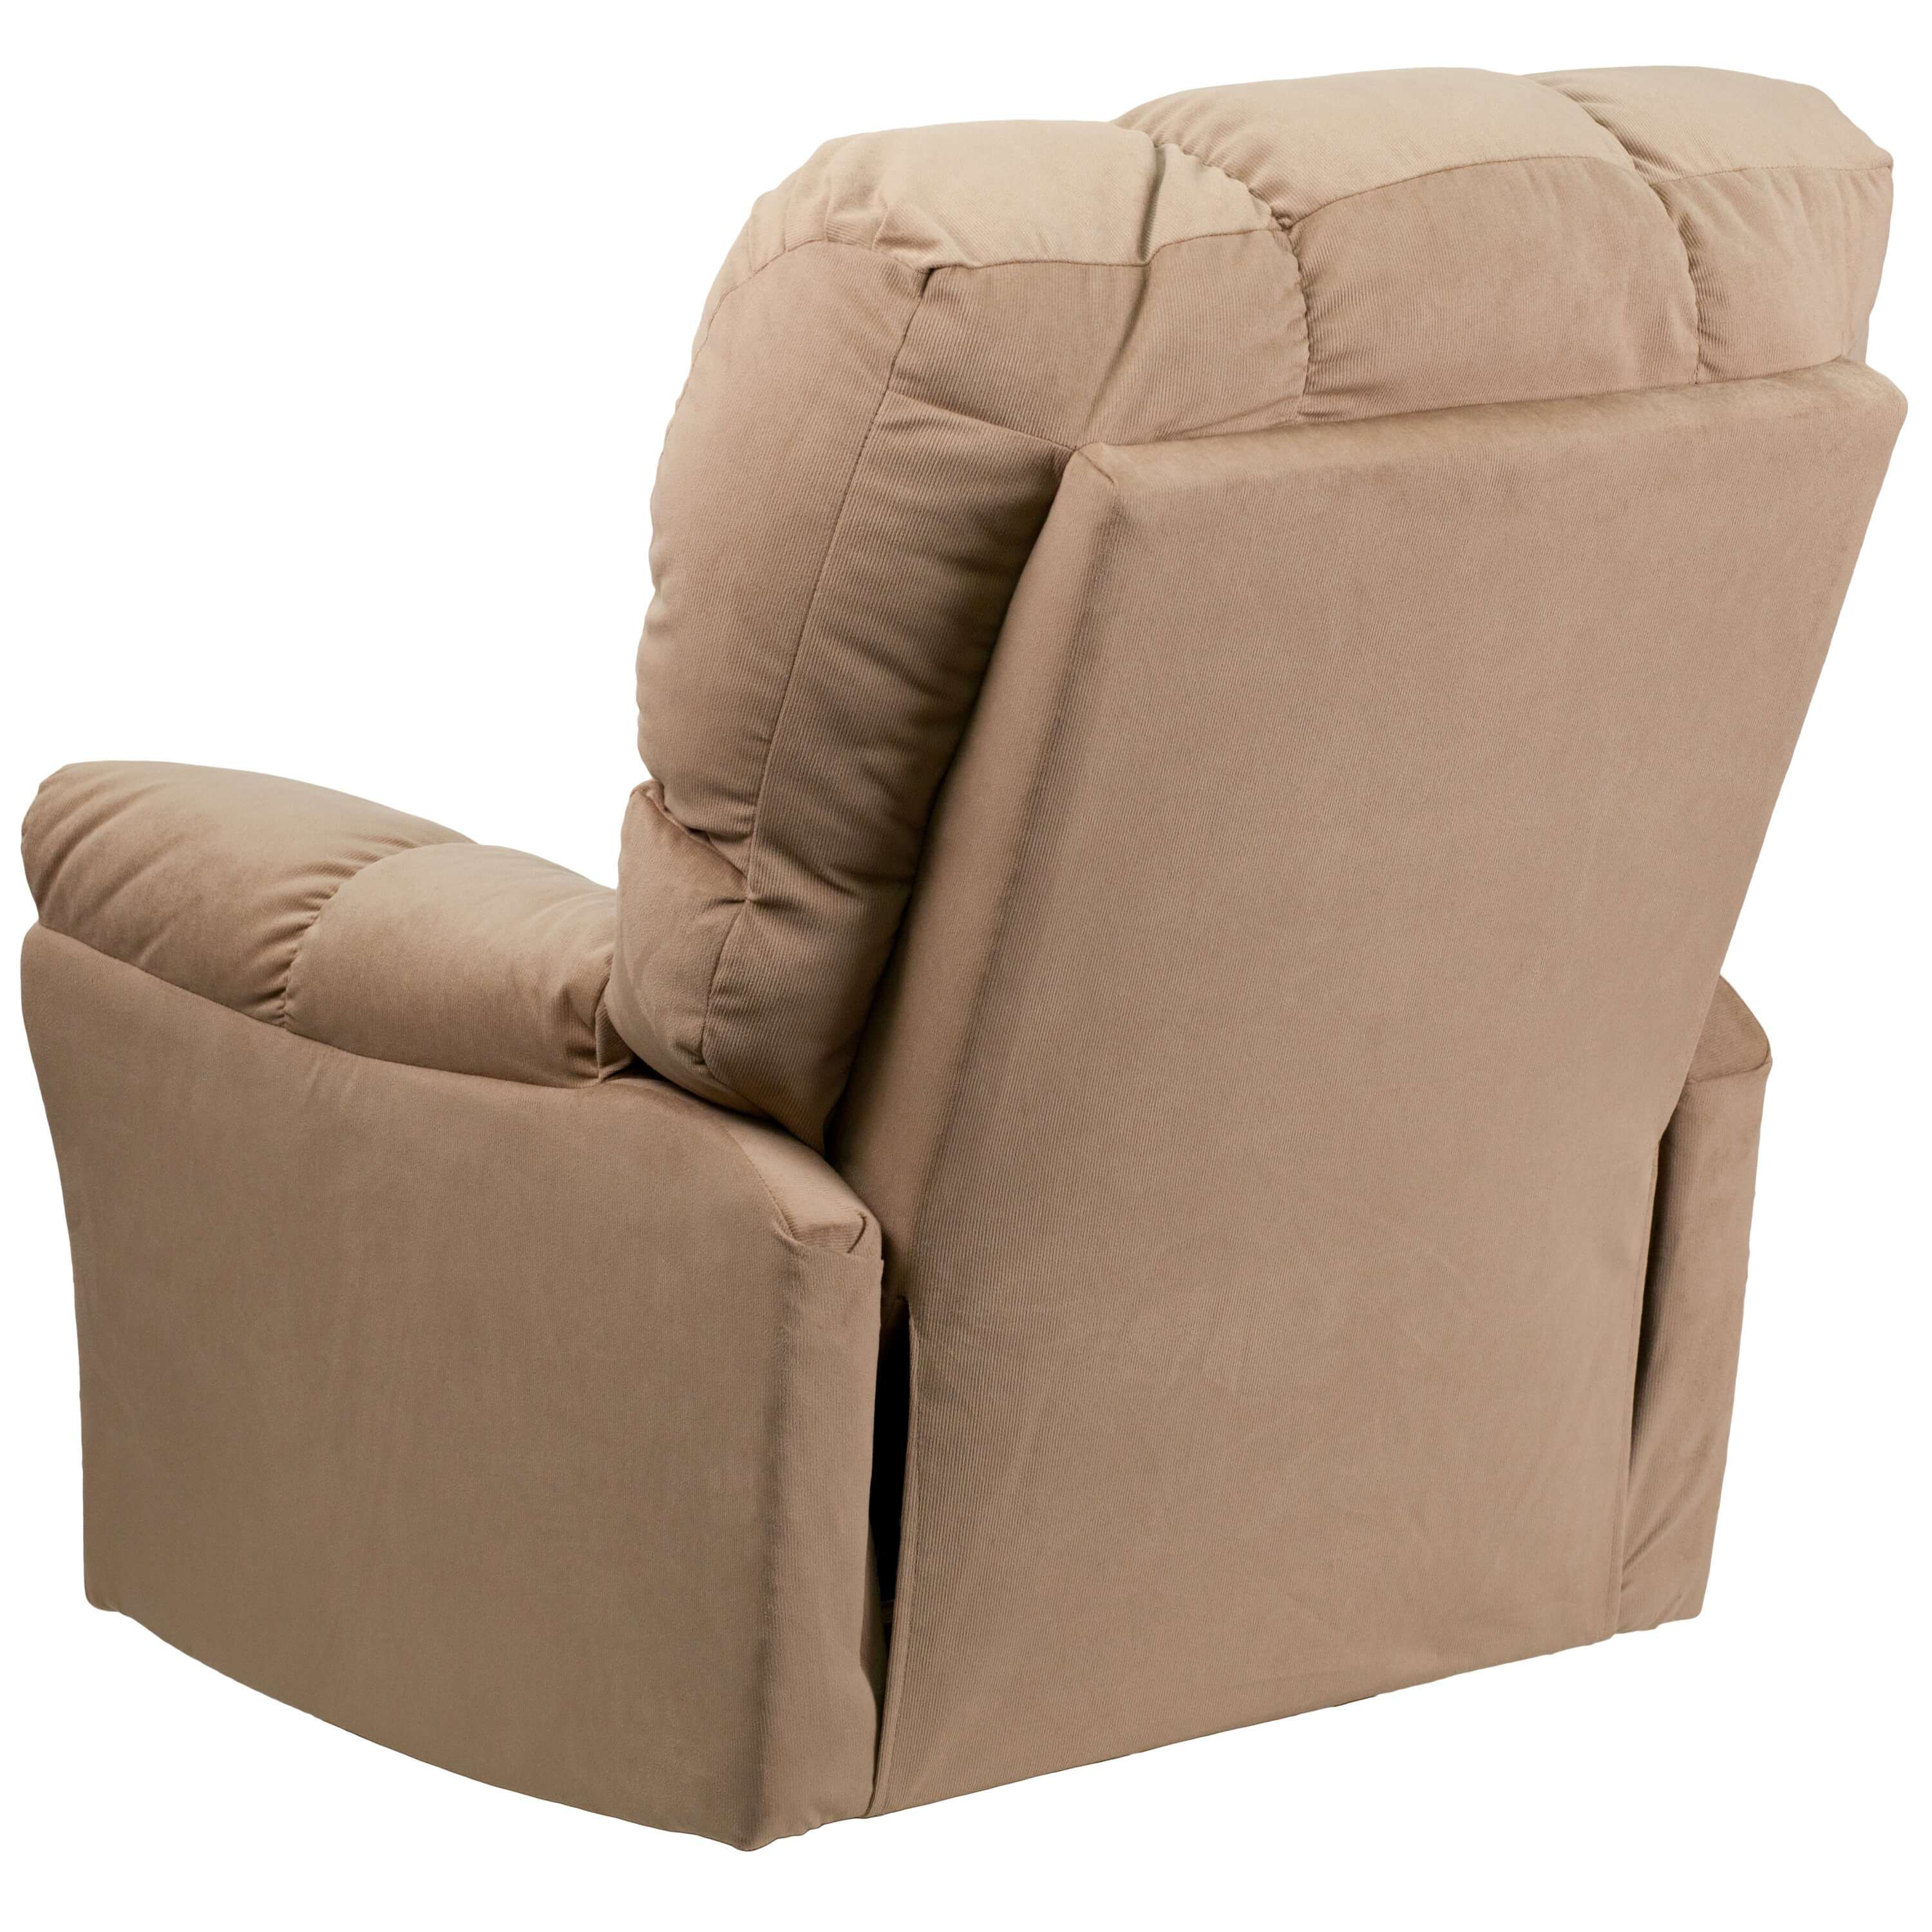 Microfiber recliner back view 1